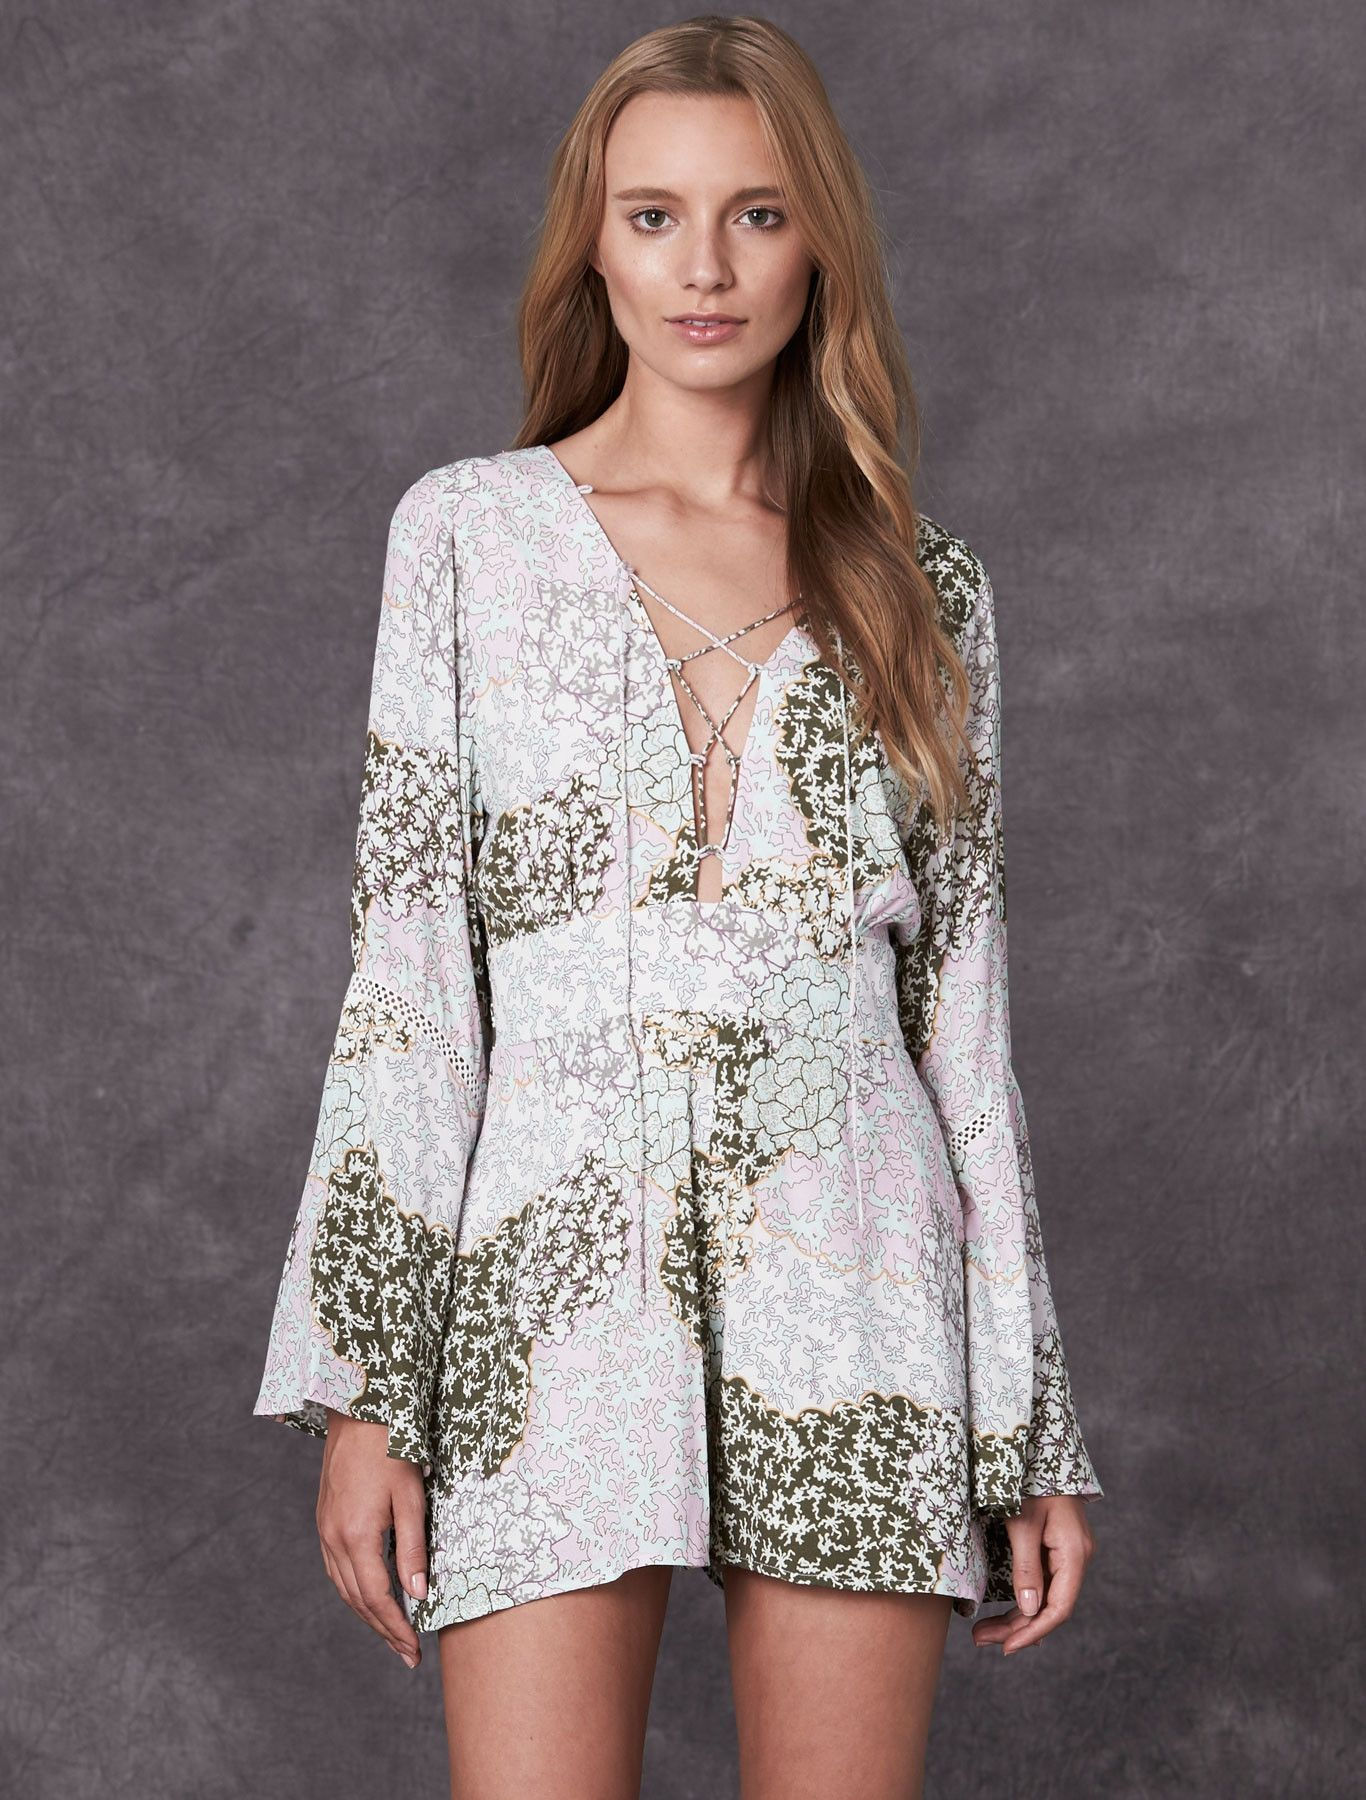 1b48aa57de STEVIE MAY PELAGIC PLAYSUIT from the Vanguard collection. A chic everyday  staple